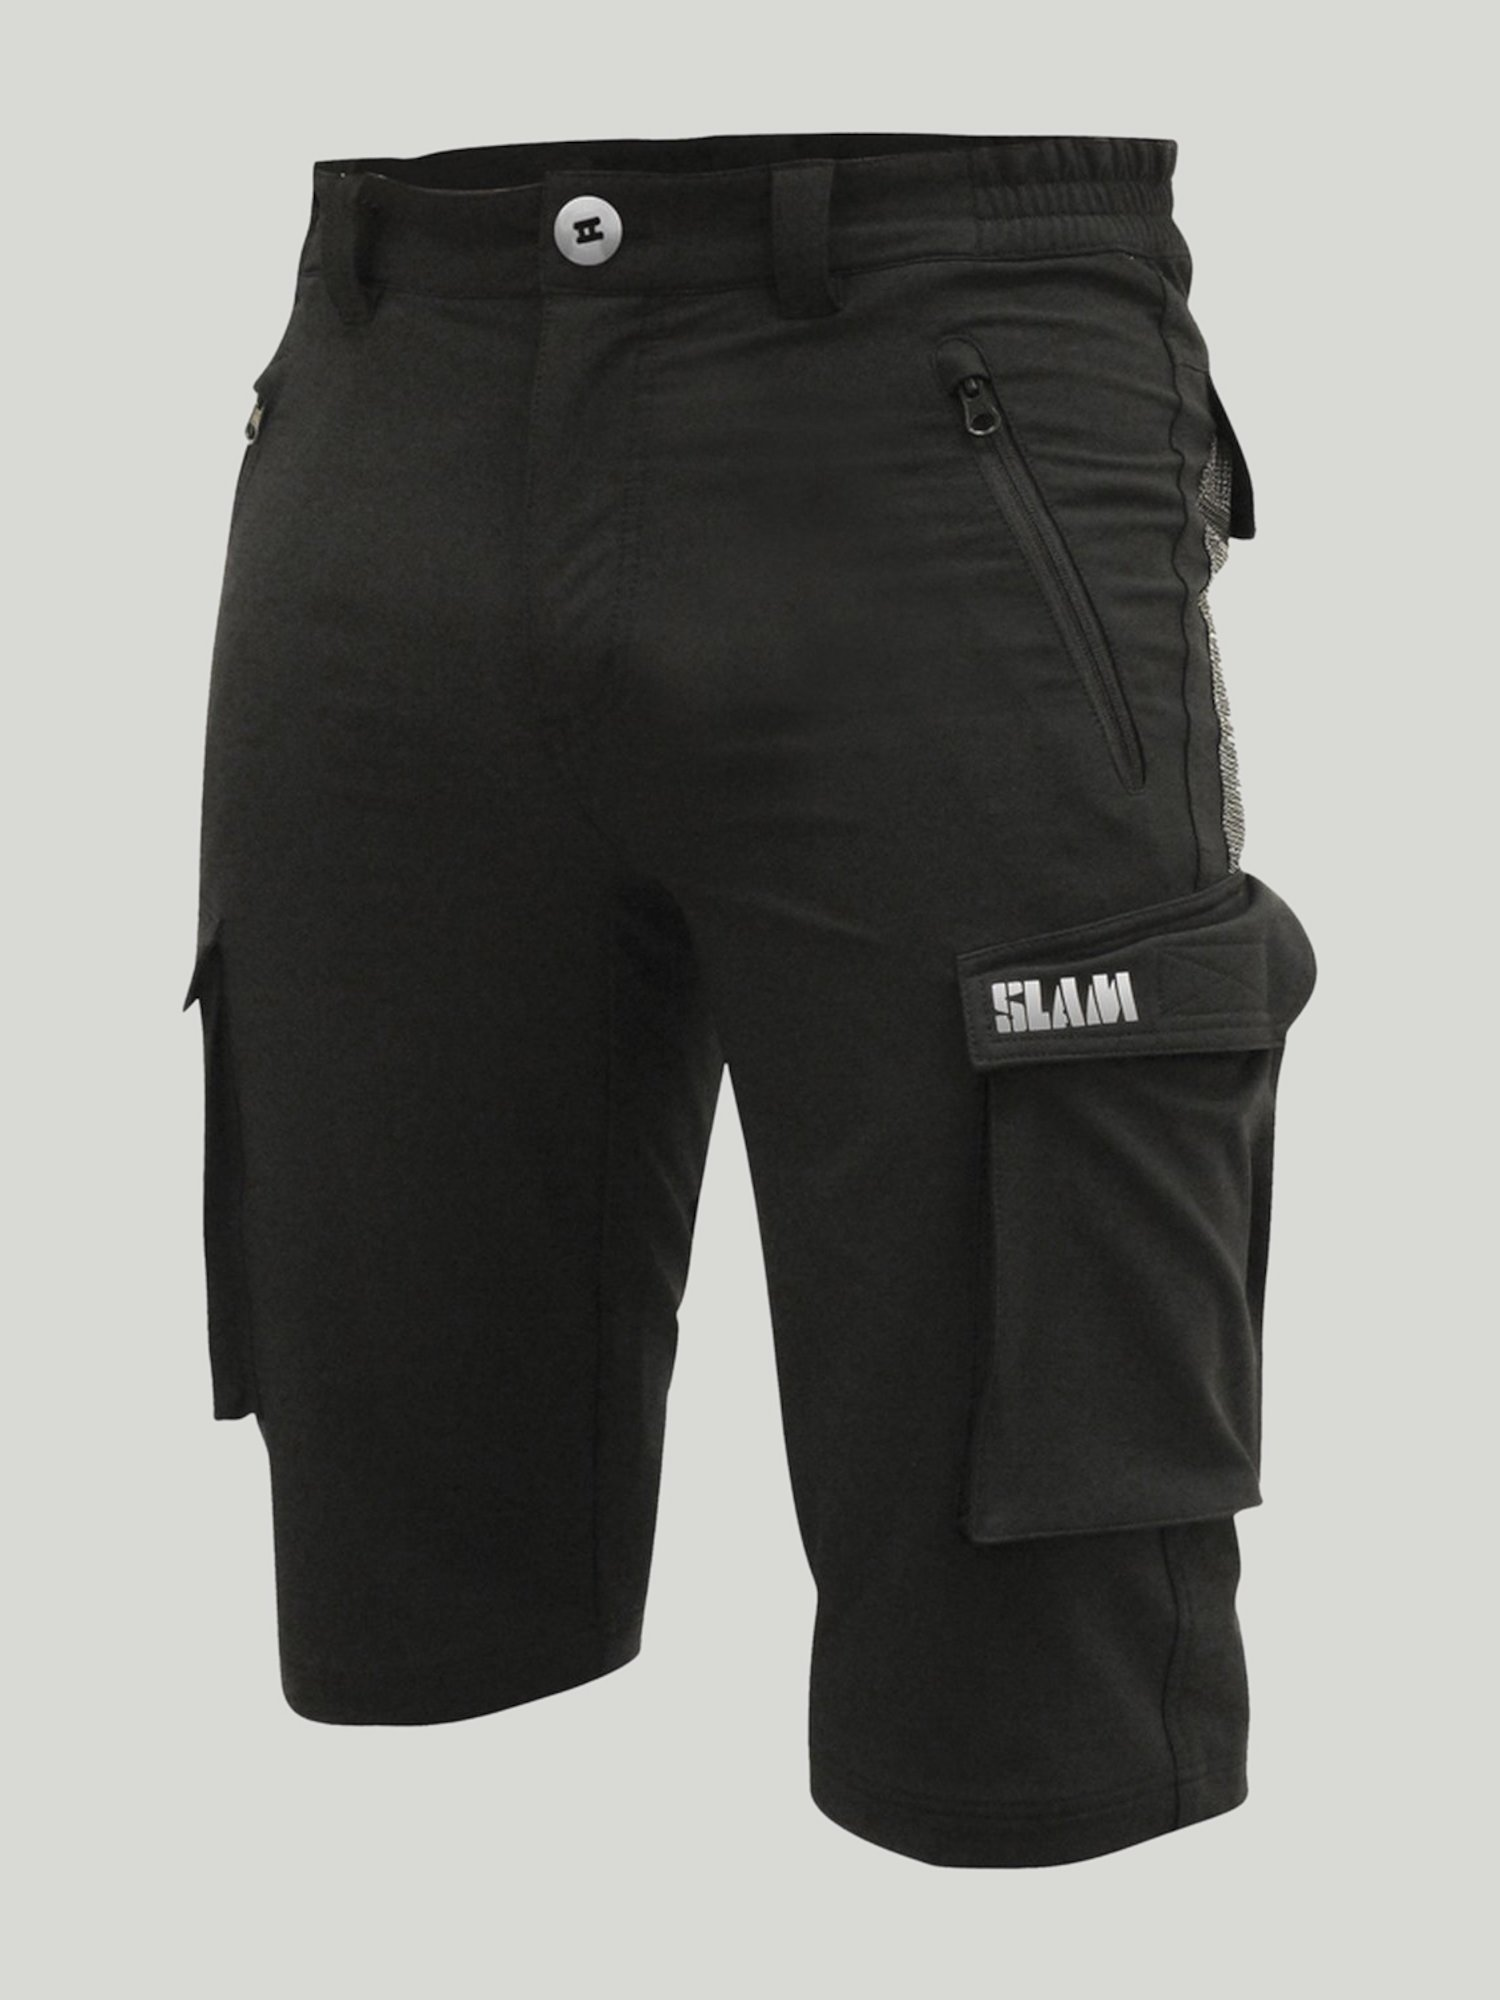 Tech bermudas - Black